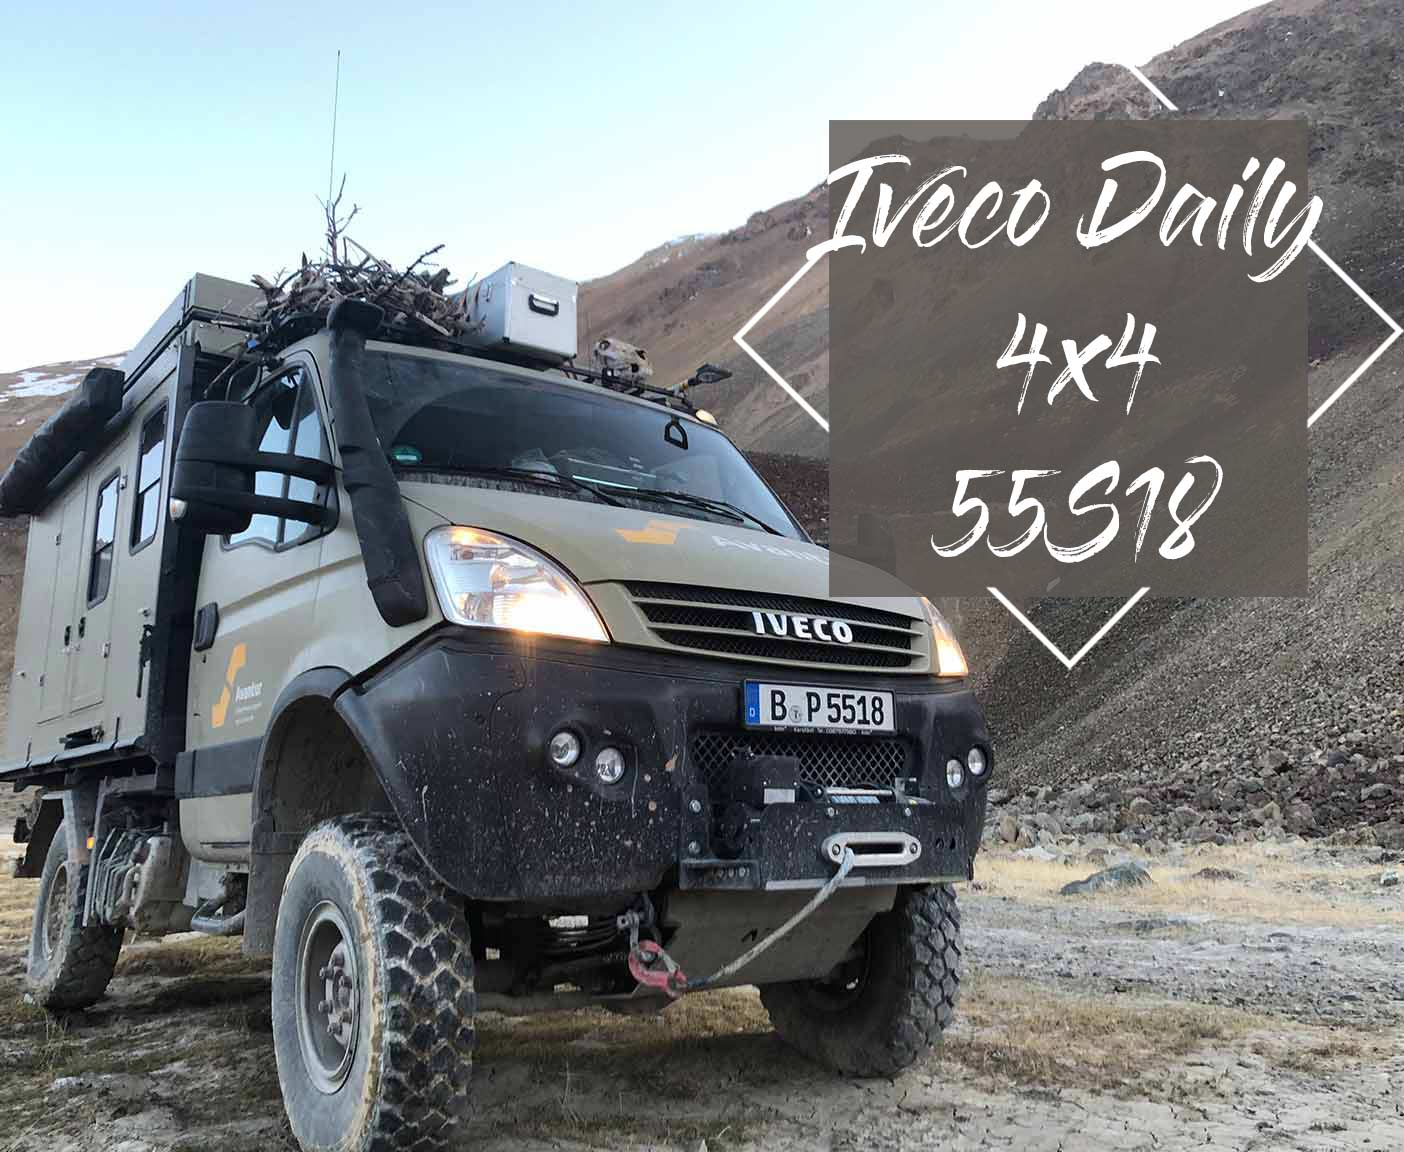 IVECO DAILY 10x10 10S10 - ein Familien-Wohnmobil mal anders